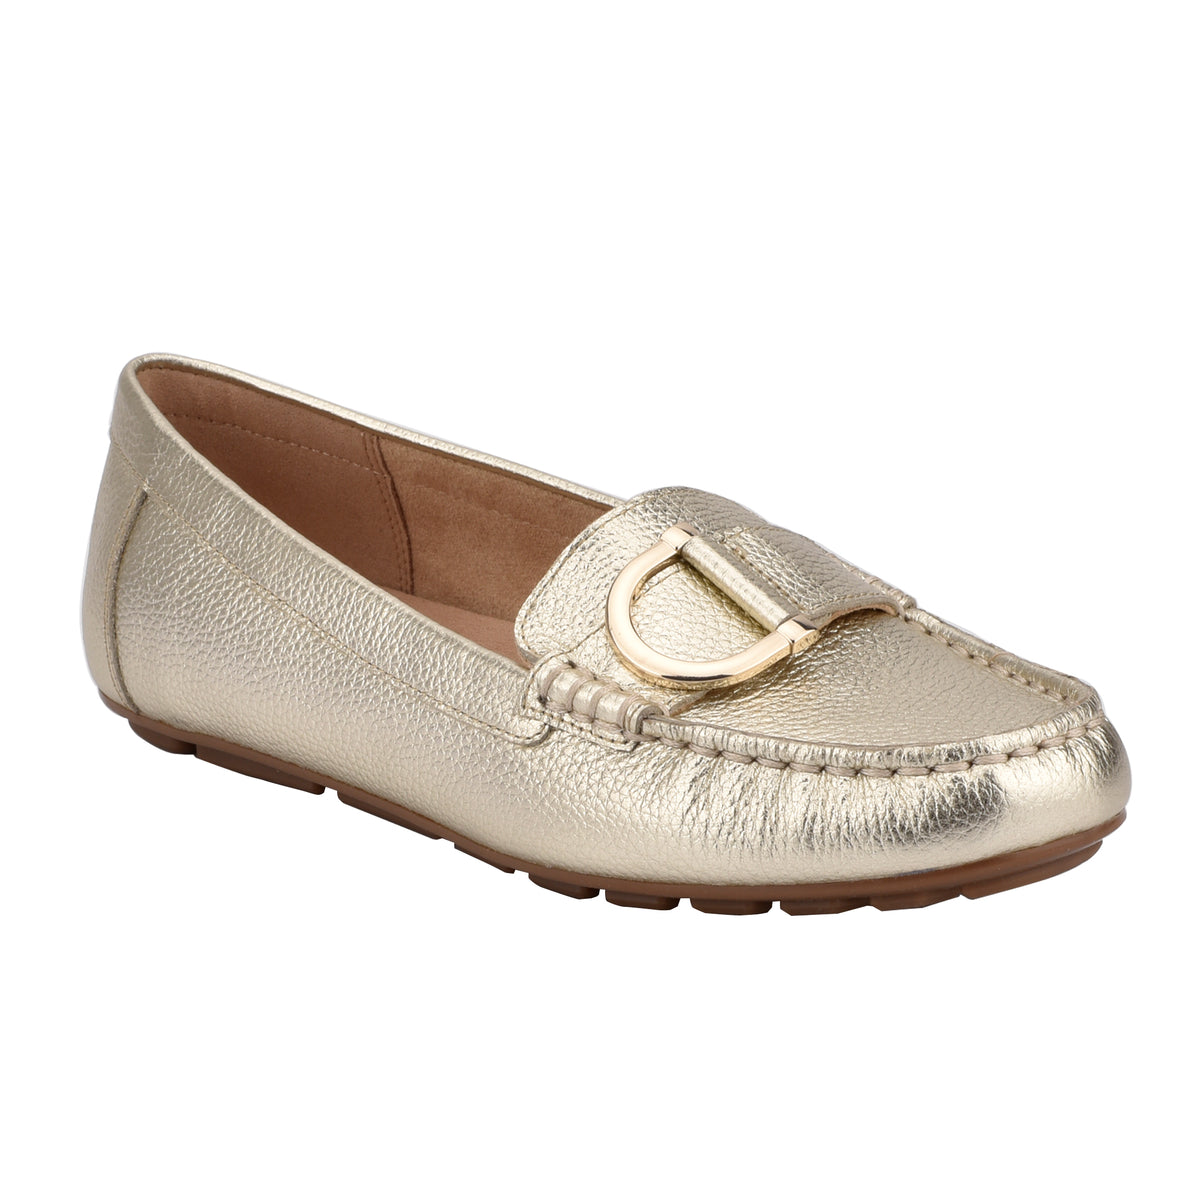 Mink Flat Slip On Loafer